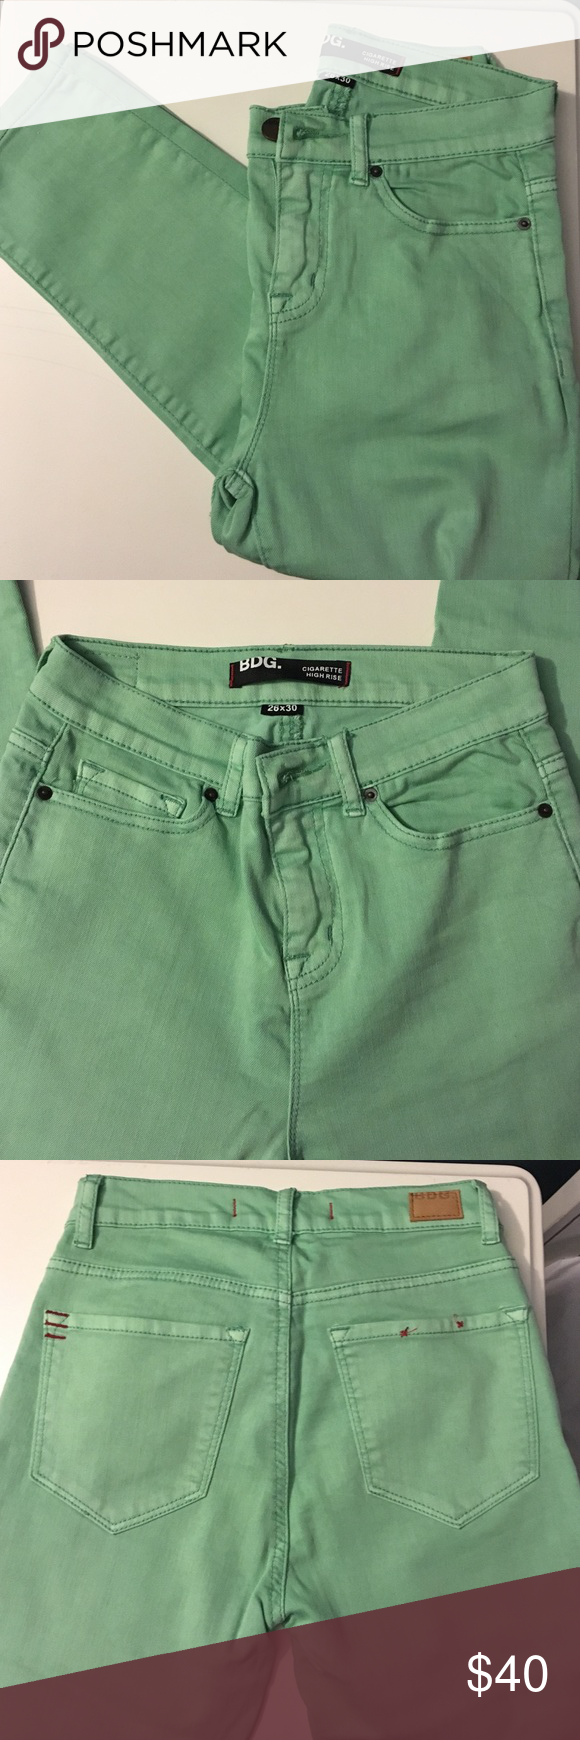 to wear - Green Mint skinny jeans urban outfitters pictures video